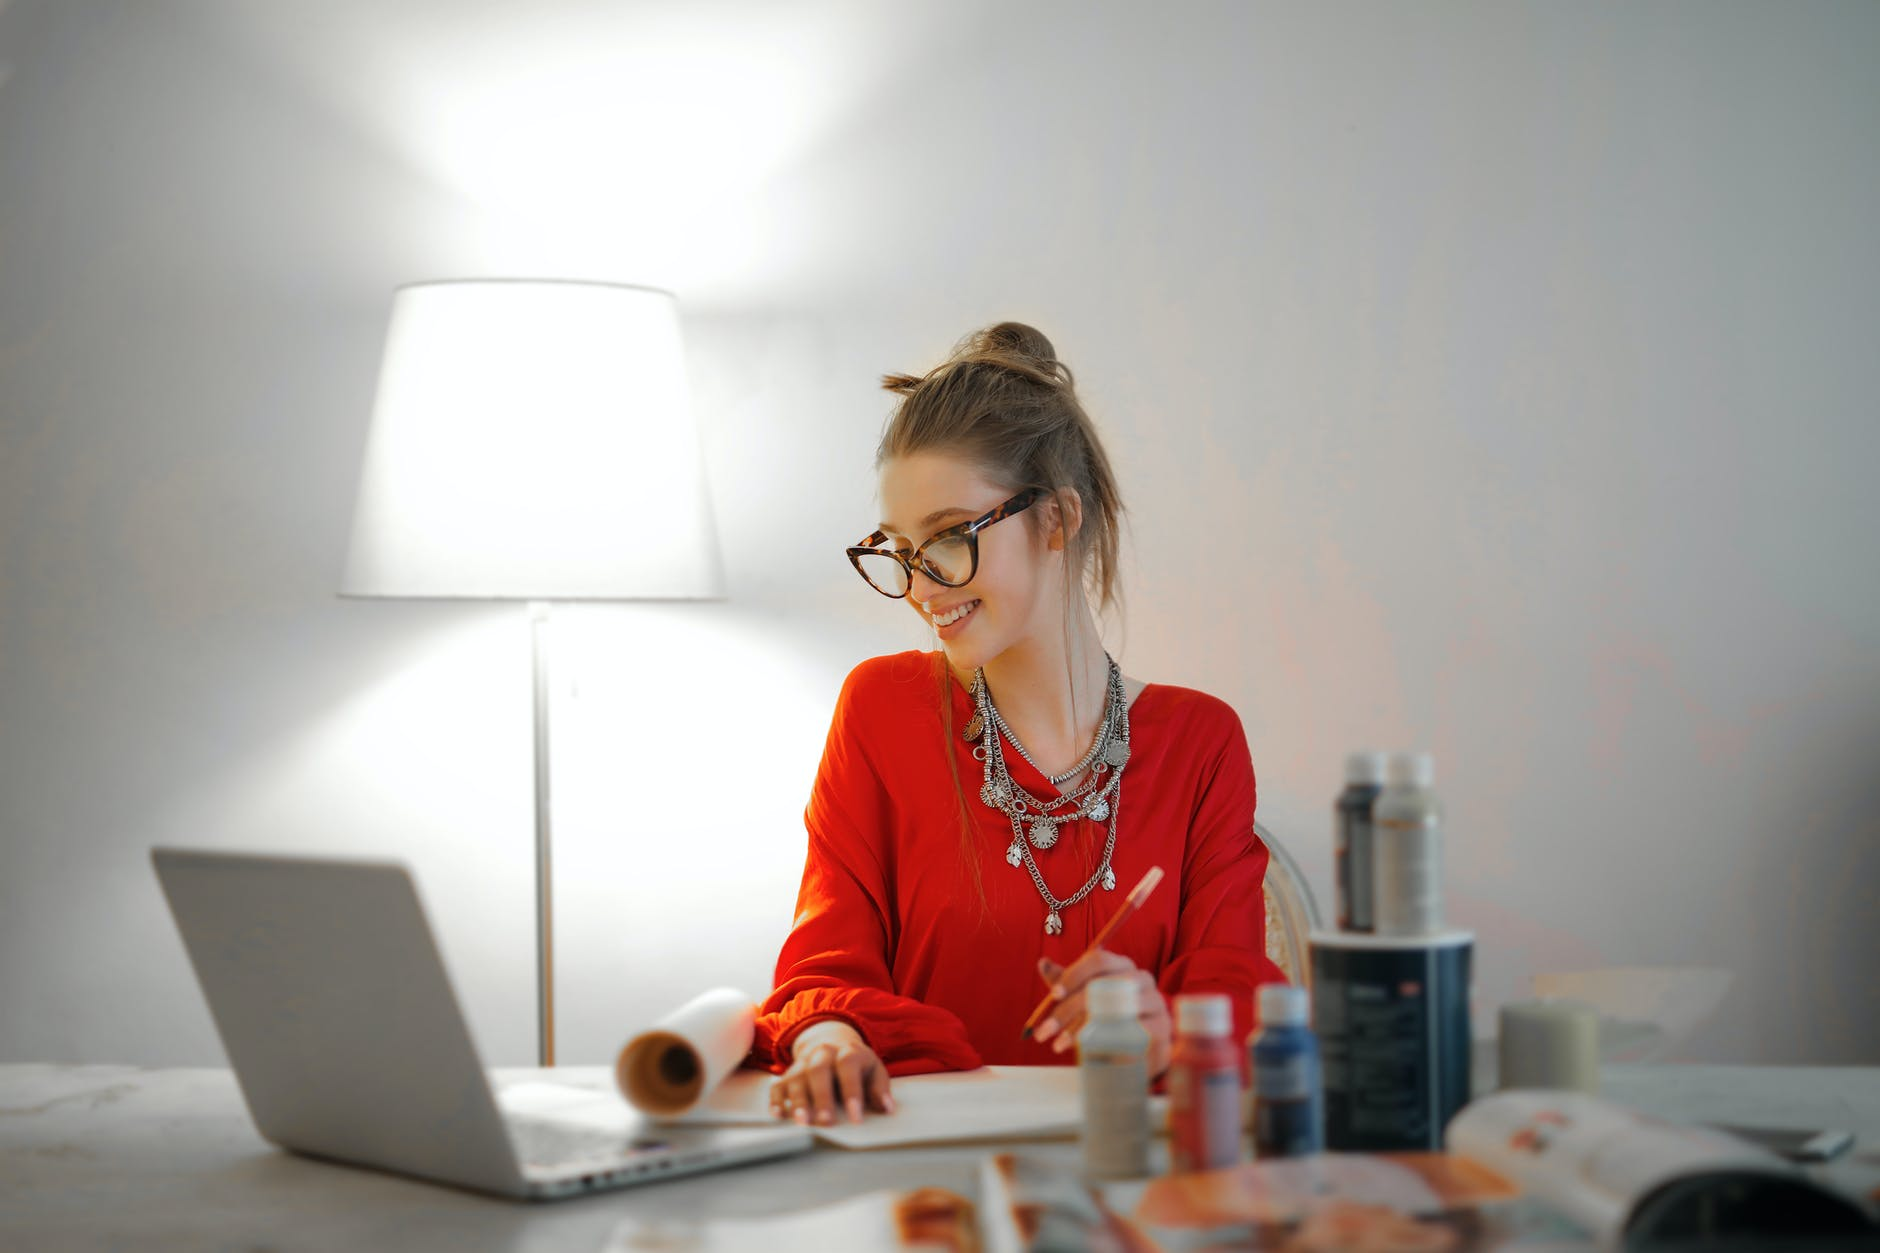 3 Easy Freelance Jobs to Try for Extra Income